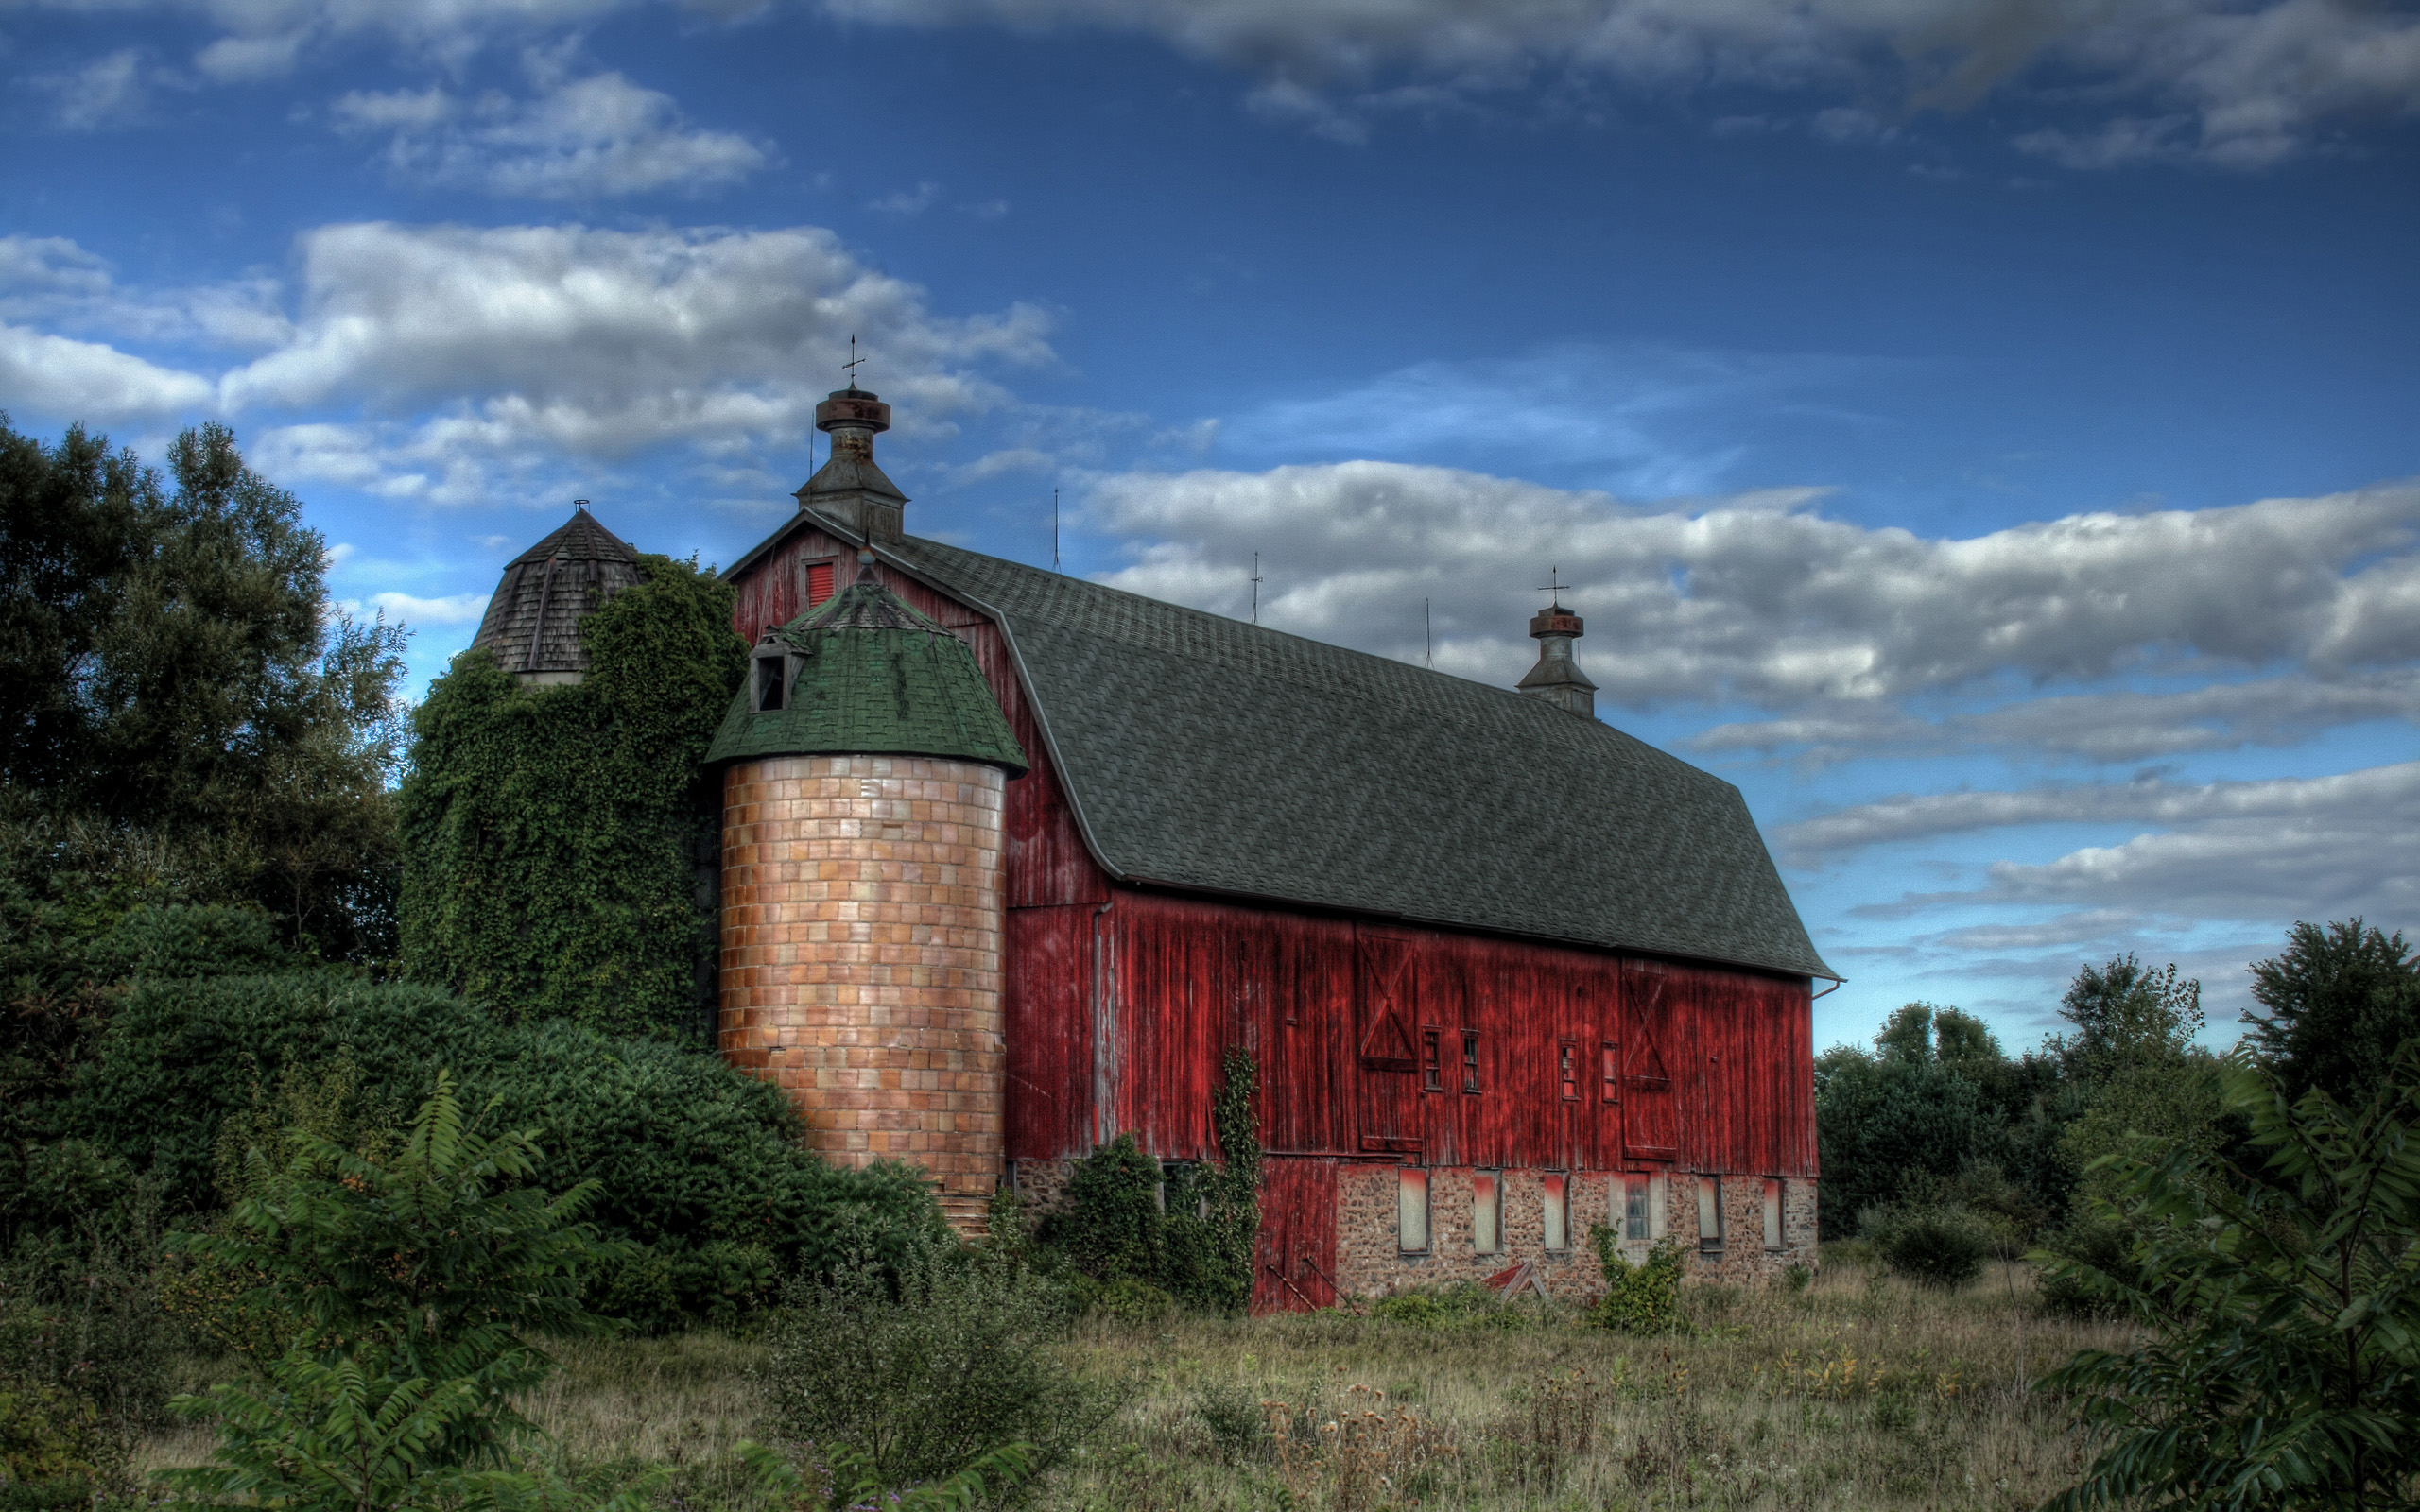 Old Red Barn 746.75 Kb